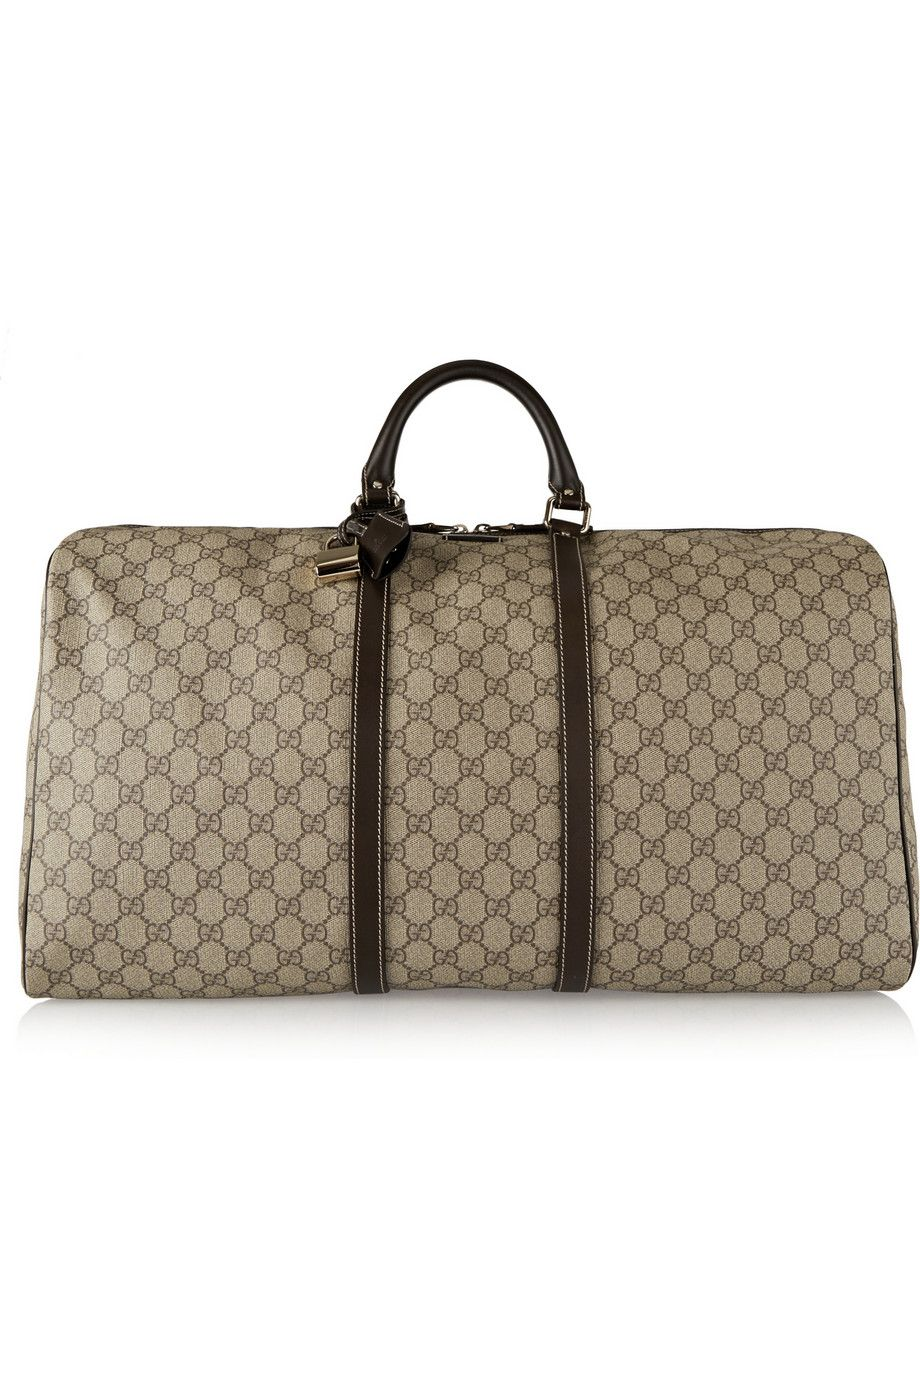 89c277c431c0 Gucci   Joy large leather-trimmed coated canvas weekend bag    NET-A-PORTER.COM